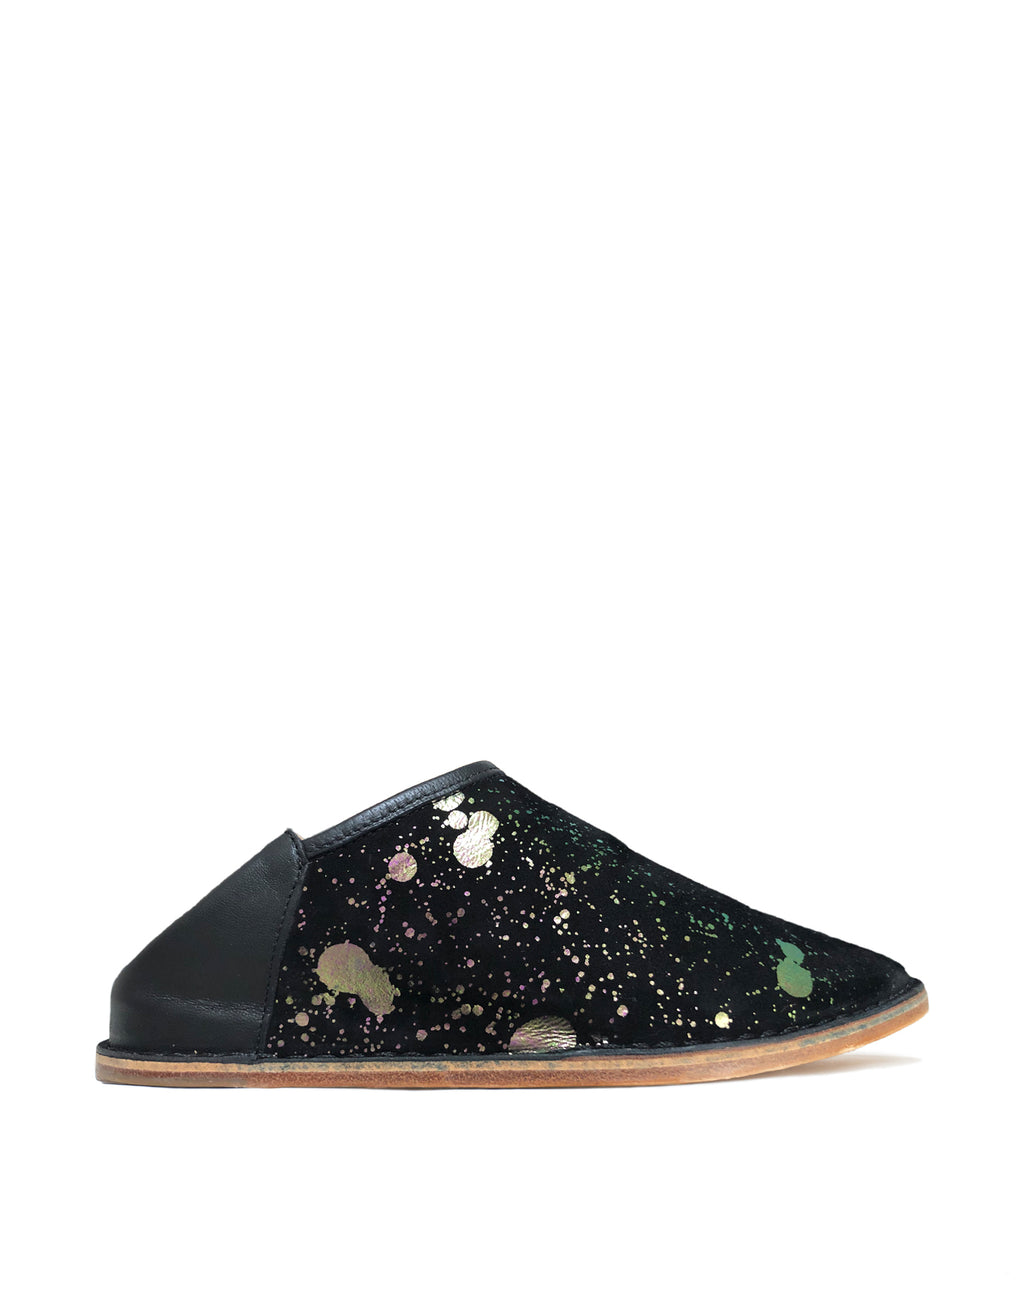 Black and Iridescent Pink Green Splash Slip On